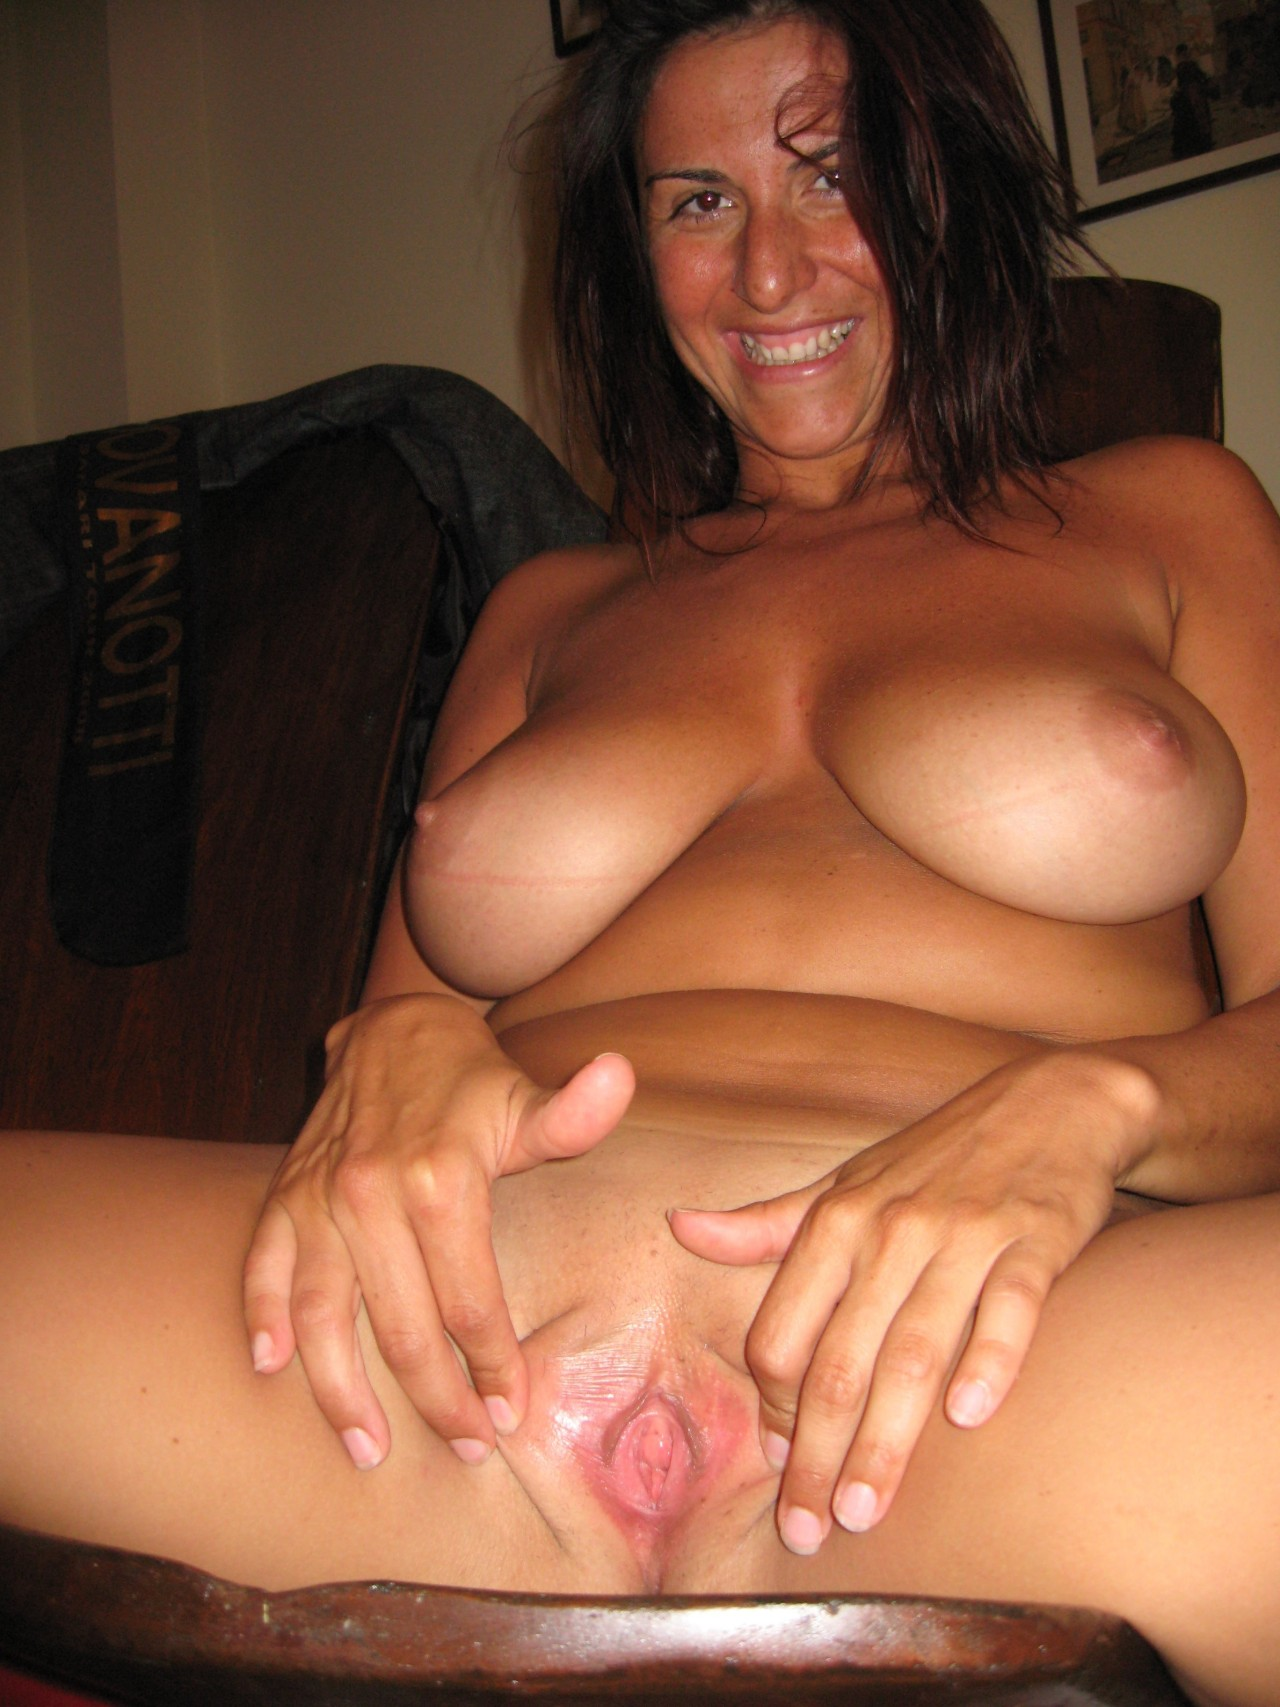 Mom showing her shaved pussy